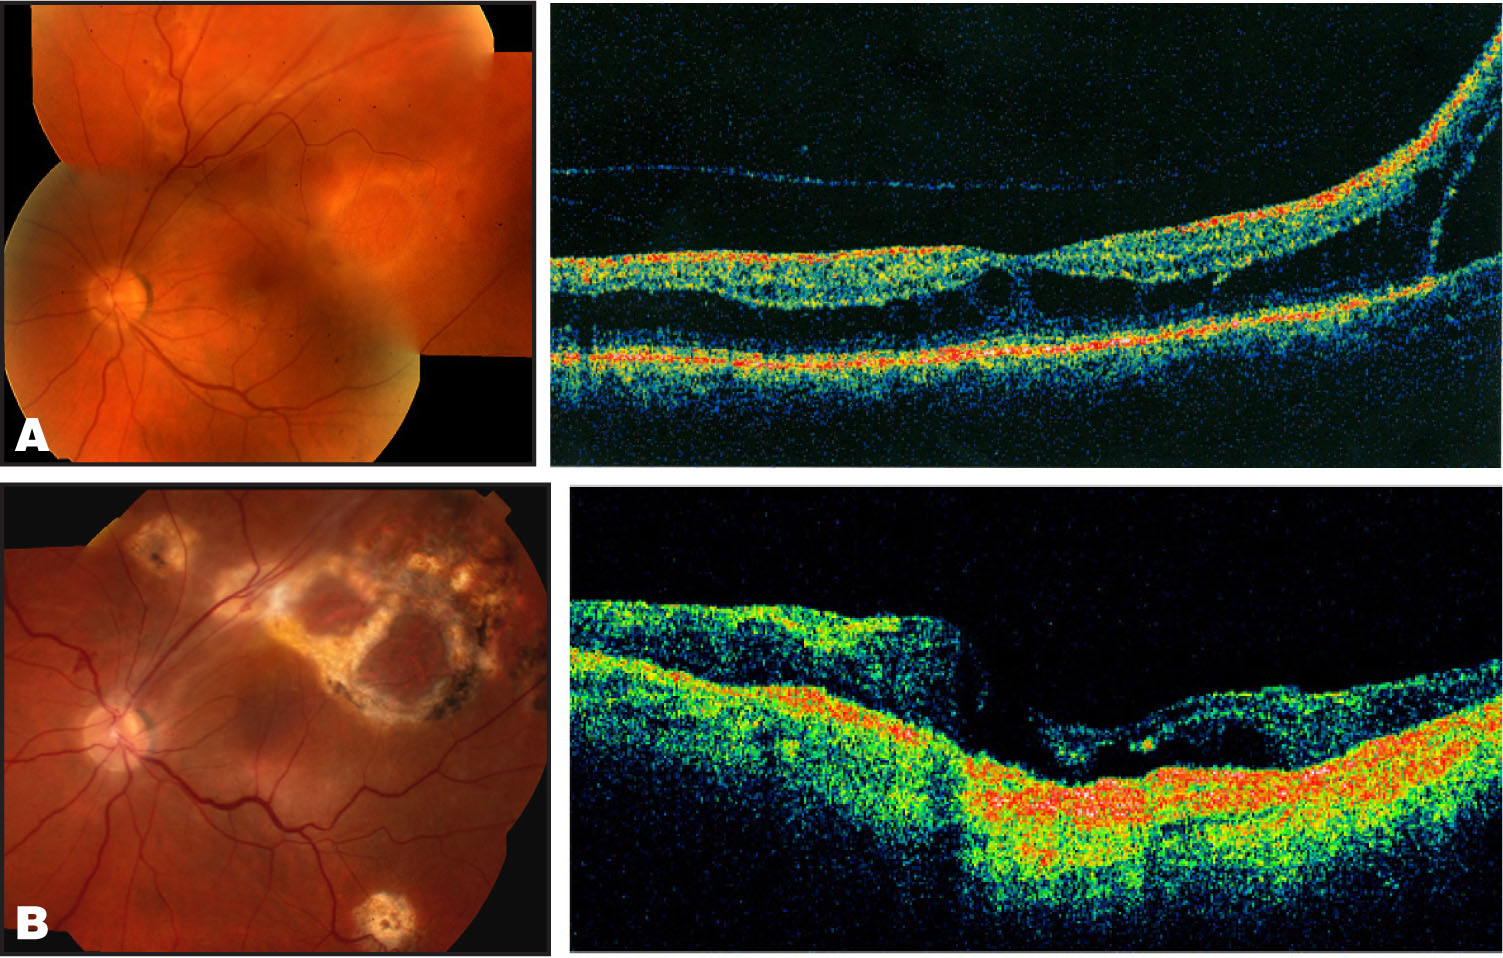 (A) Left: Montage Photograph of Case 3 Showing the Superior Temporal Retinoschisis Extending to the Foveal Edge. Right: OCT of the Left Eye Showing Combined Retinoschisis and Retinal Detachment. To the Right of the Fovea and Extending into the Temporal Quadrant There is Subretinal Fluid Corresponding to the Retinal Detachment. (B) Left: Postoperative Montage Photograph of the Left Eye Showing a Flat Retina with Chorioretinal Scarring and an Encircling Scleral Buckle. Right: OCT Horizontal Cross Section Through the Fovea of the Left Eye Confirming Retinal Reattachment with Residual Macular Edema.